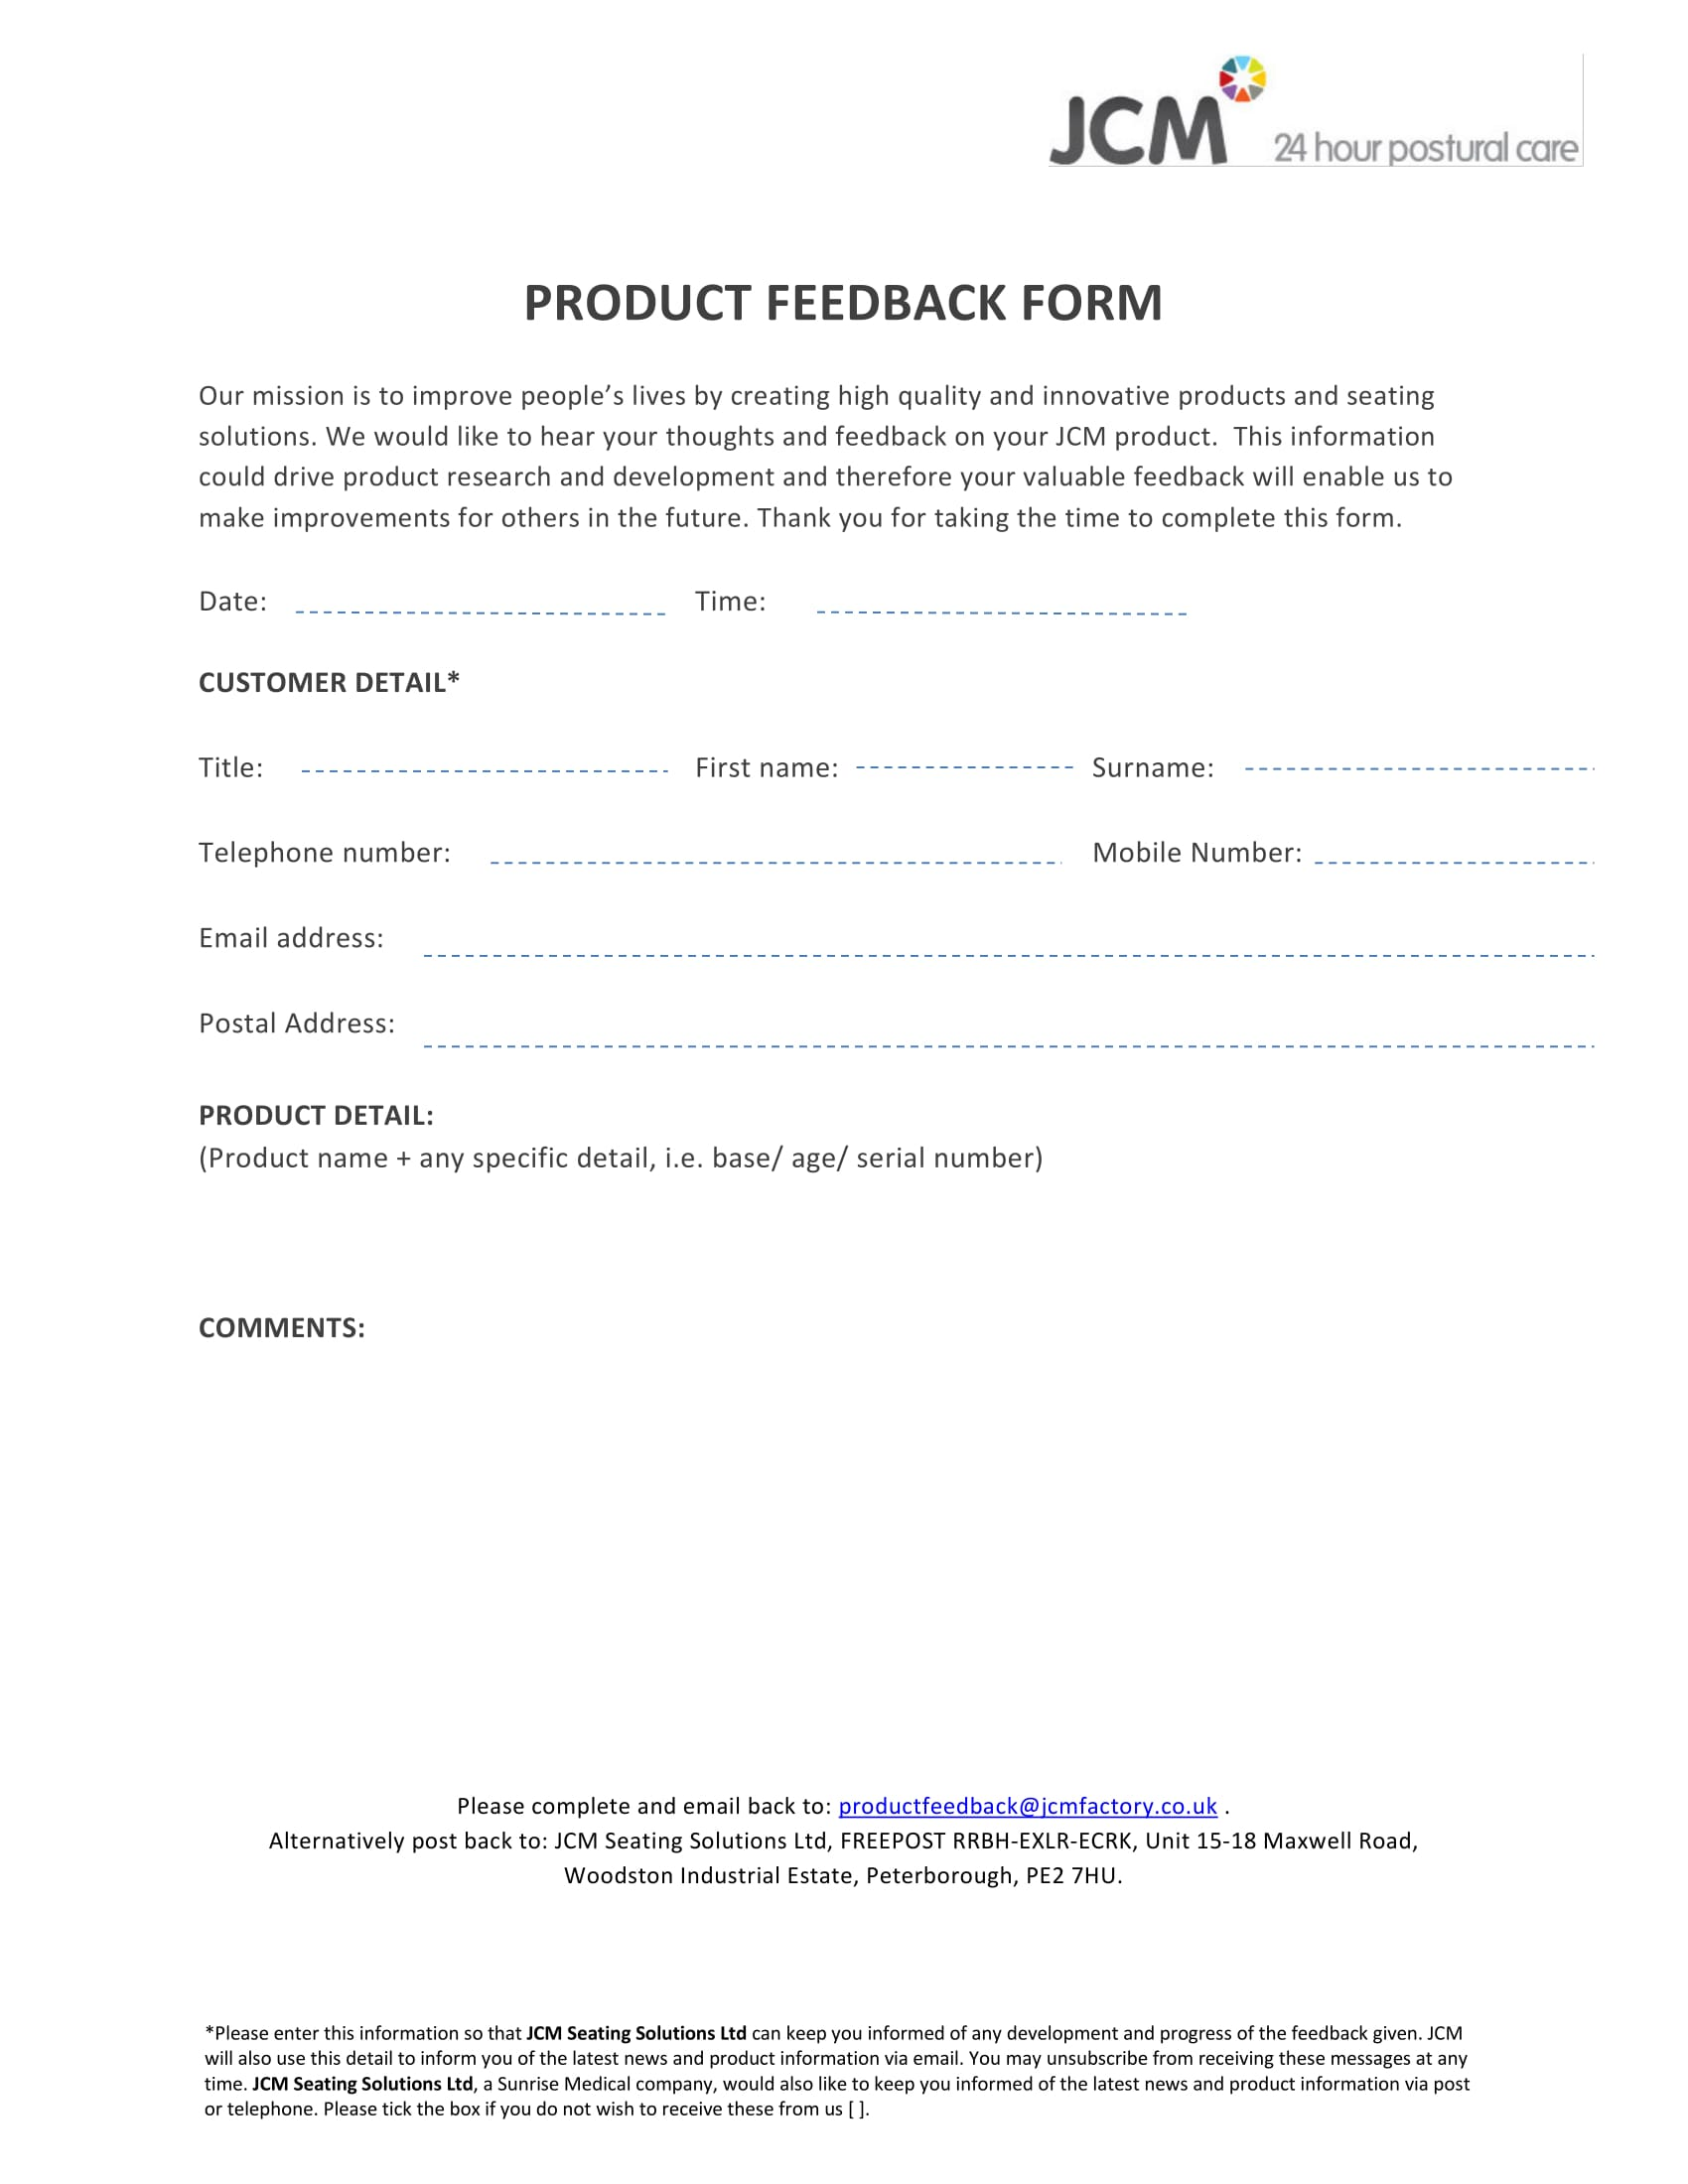 new product feedback form 1